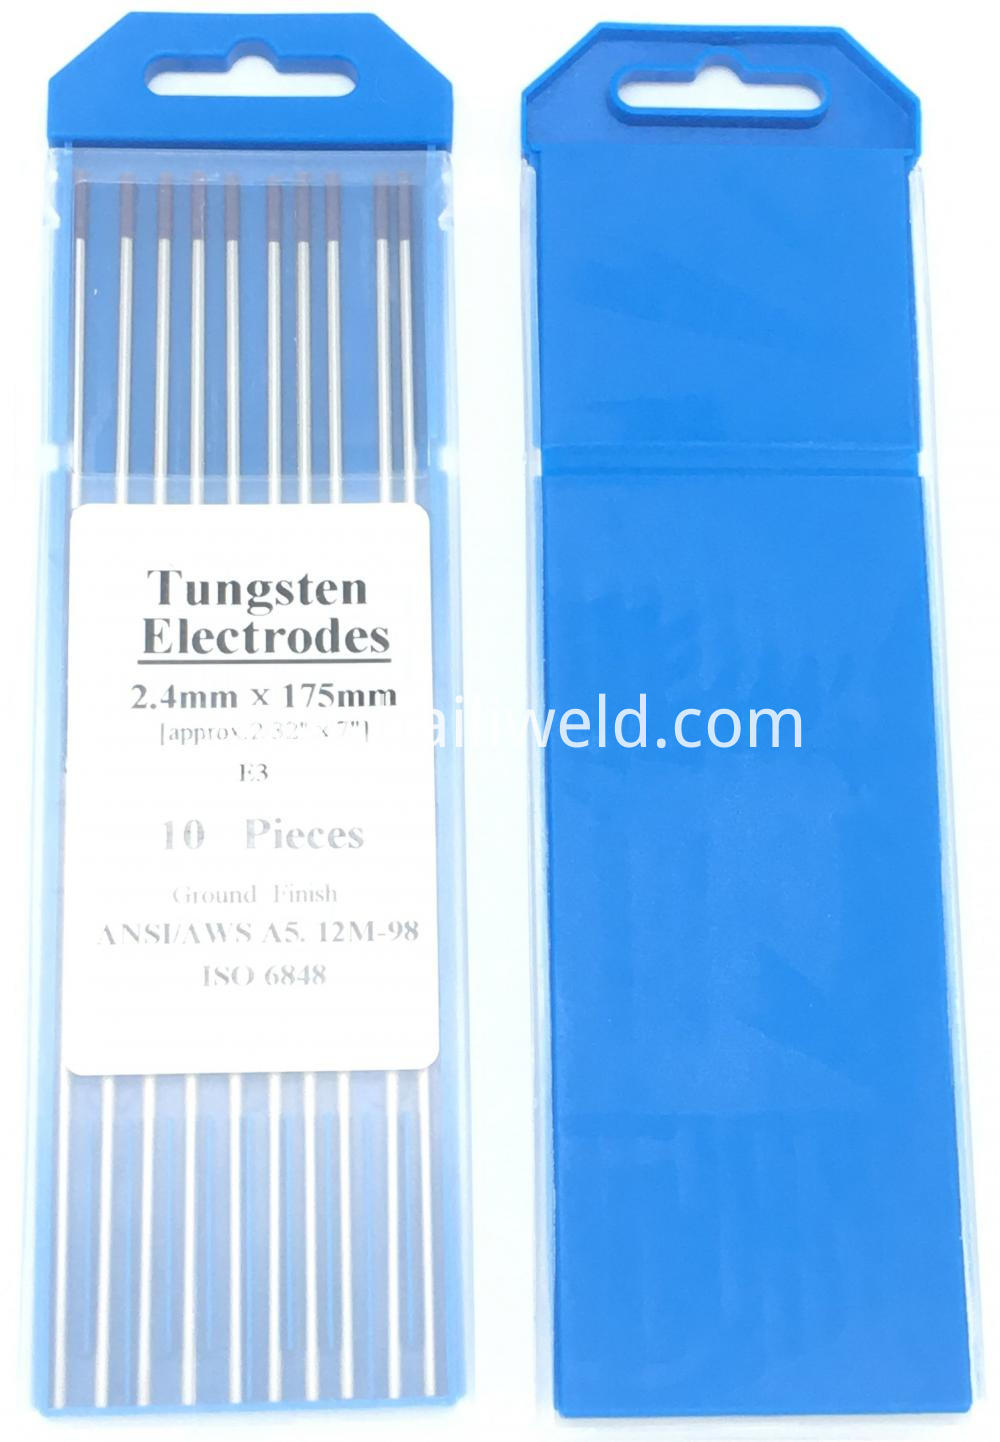 E3 Composite Tungsten Electrode 2 4mm X 175mm